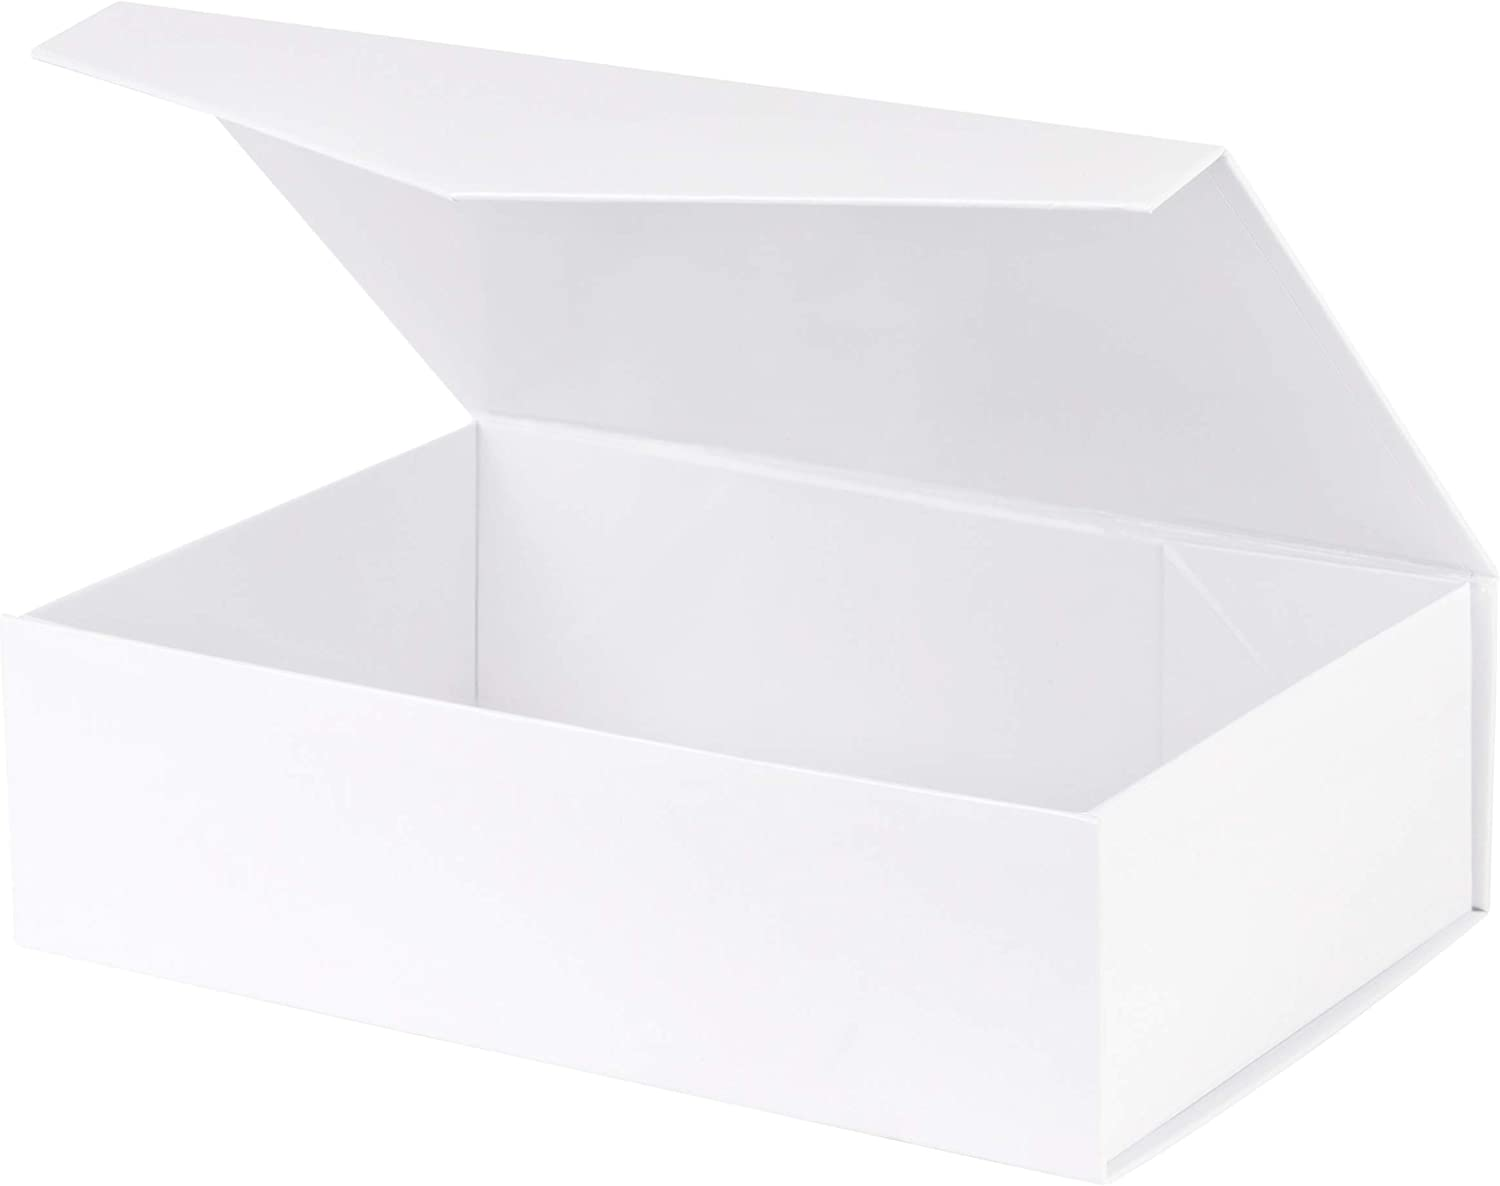 "White Hard Gift Box with Magnetic Closure Lid 14"" X 9"" X 4"" 1 Pack Gift Boxes with White Glossy Finish (1 Pack)"